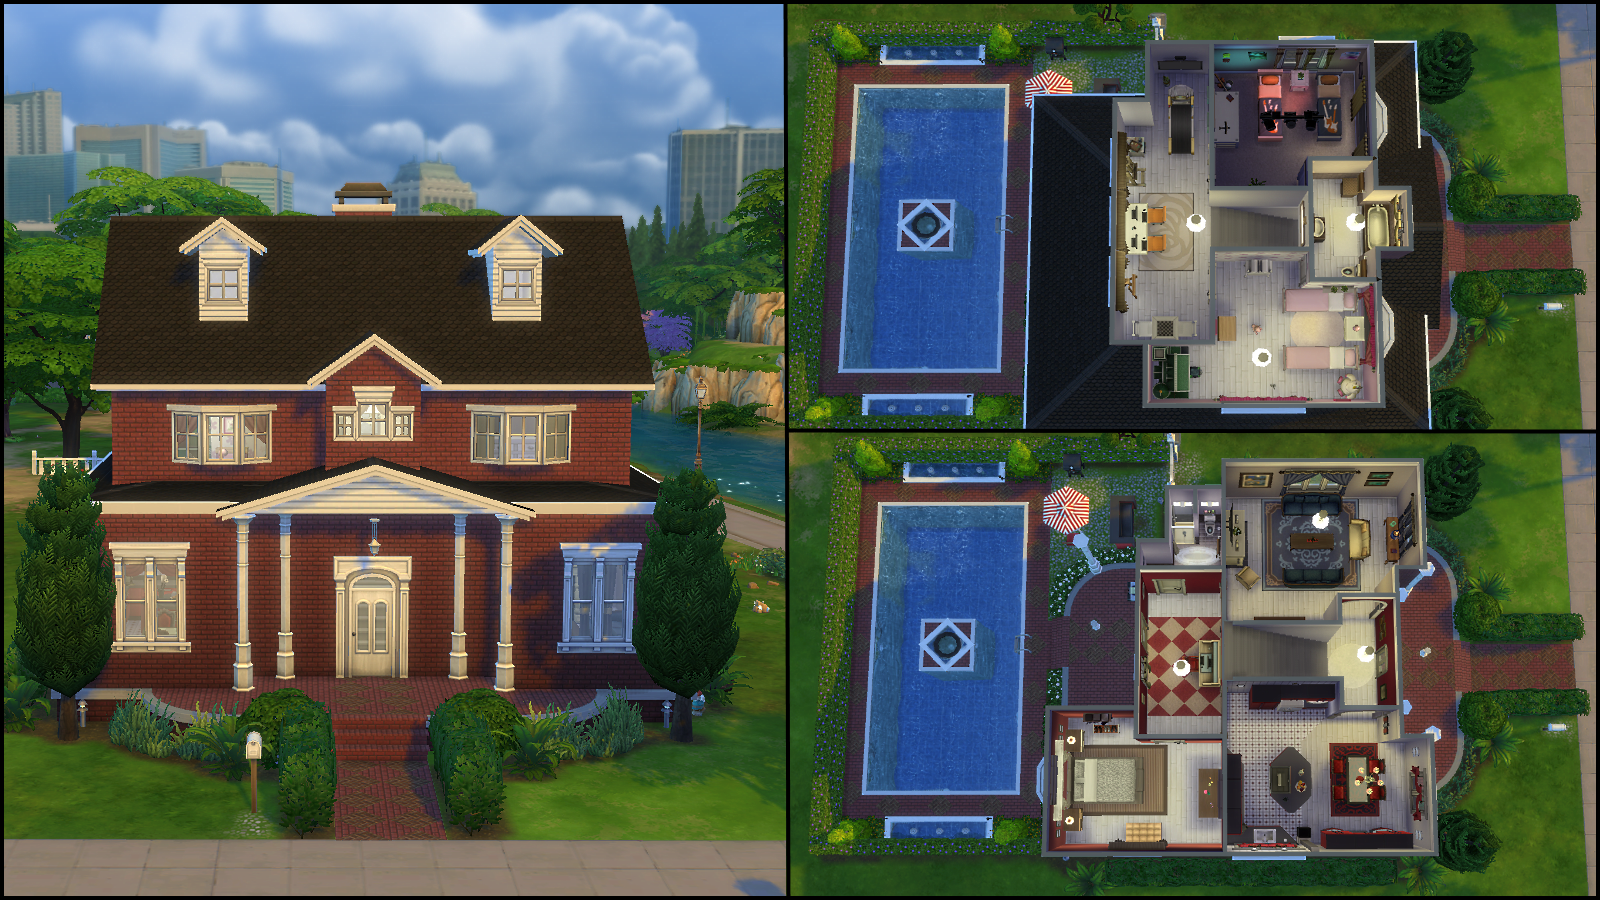 The Sims 4 Gallery Spotlight SimsVIP : Rosehaven from simsvip.com size 1600 x 900 png 3302kB